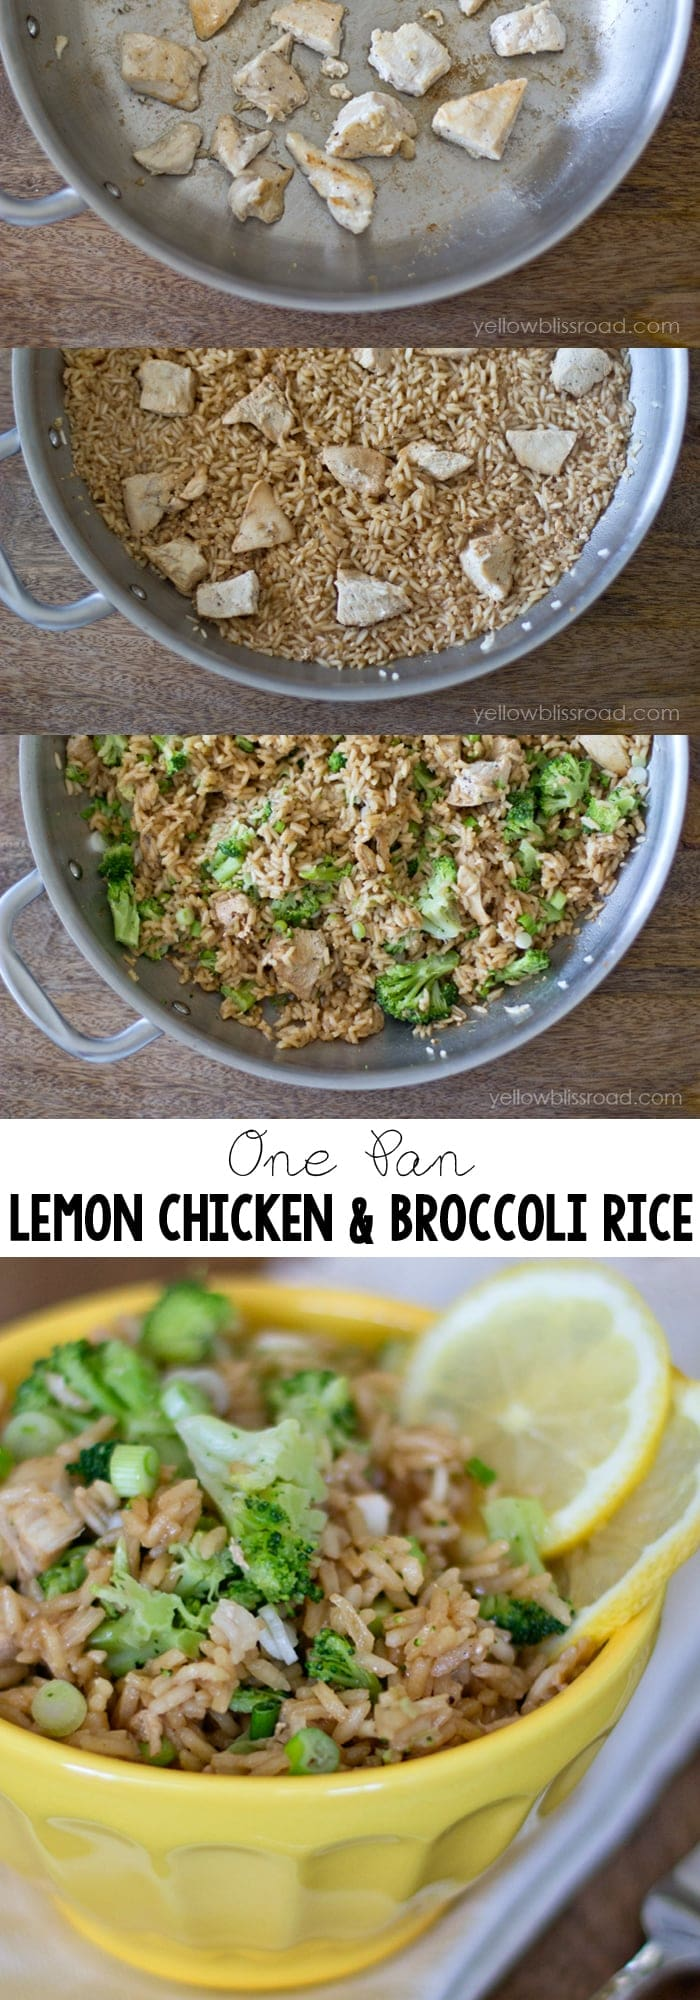 Easy One Pan Lemon Chicken and Broccoli Rice #ad #howfreshstaysfresh